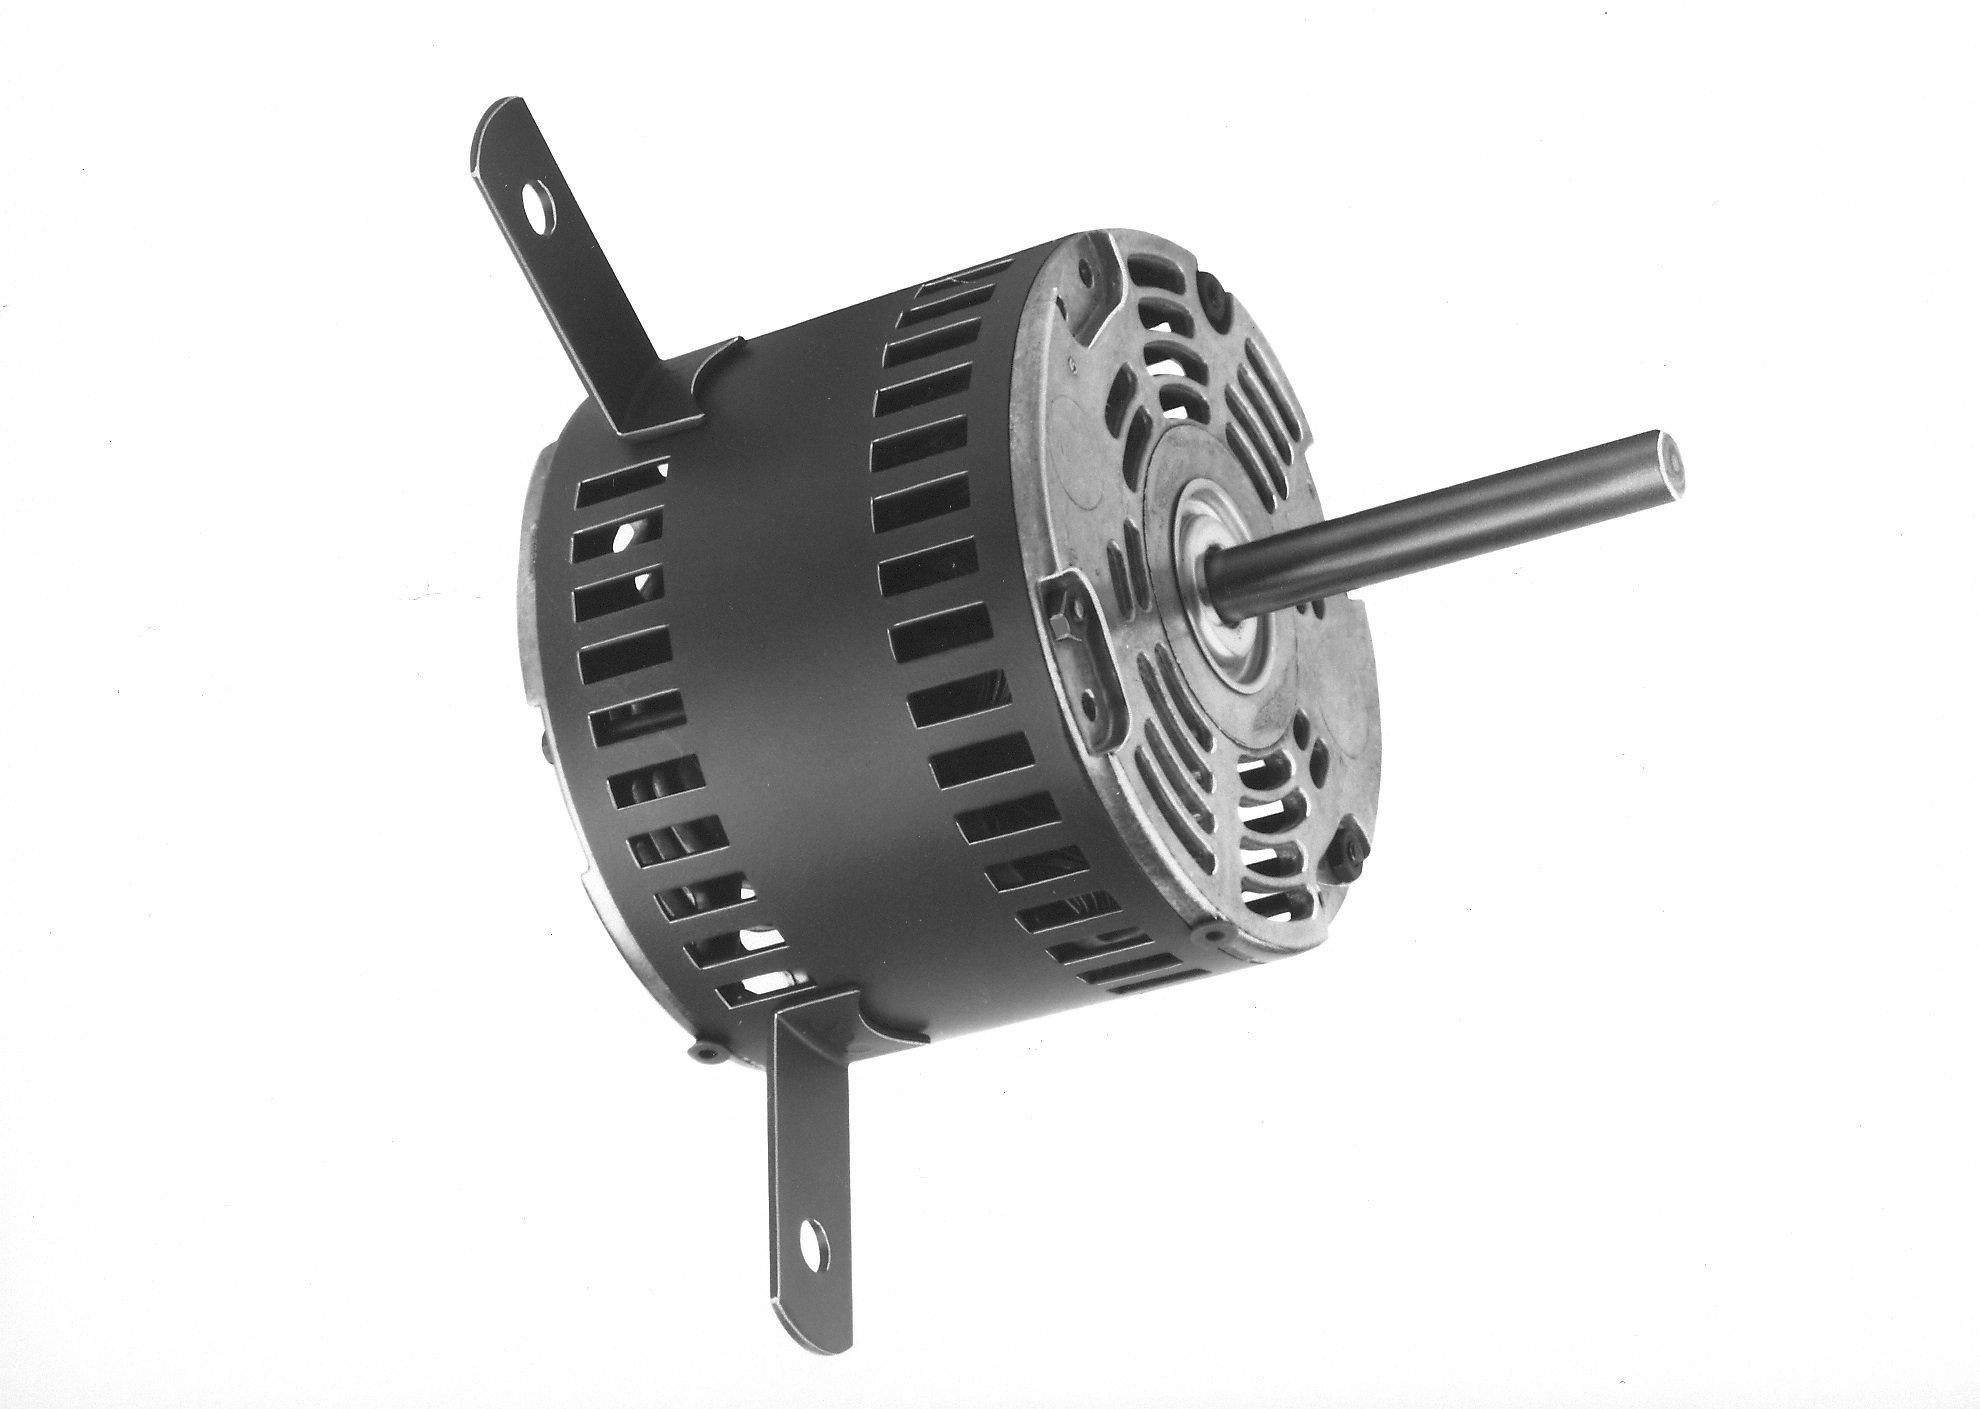 Fasco D1082 5'' Frame Shaded Pole Miller Open Ventilated OEM Replacement Motor with Ball Bearing, 1/8HP, 1070rpm, 115V, 60 Hz, 6.0amps by Fasco